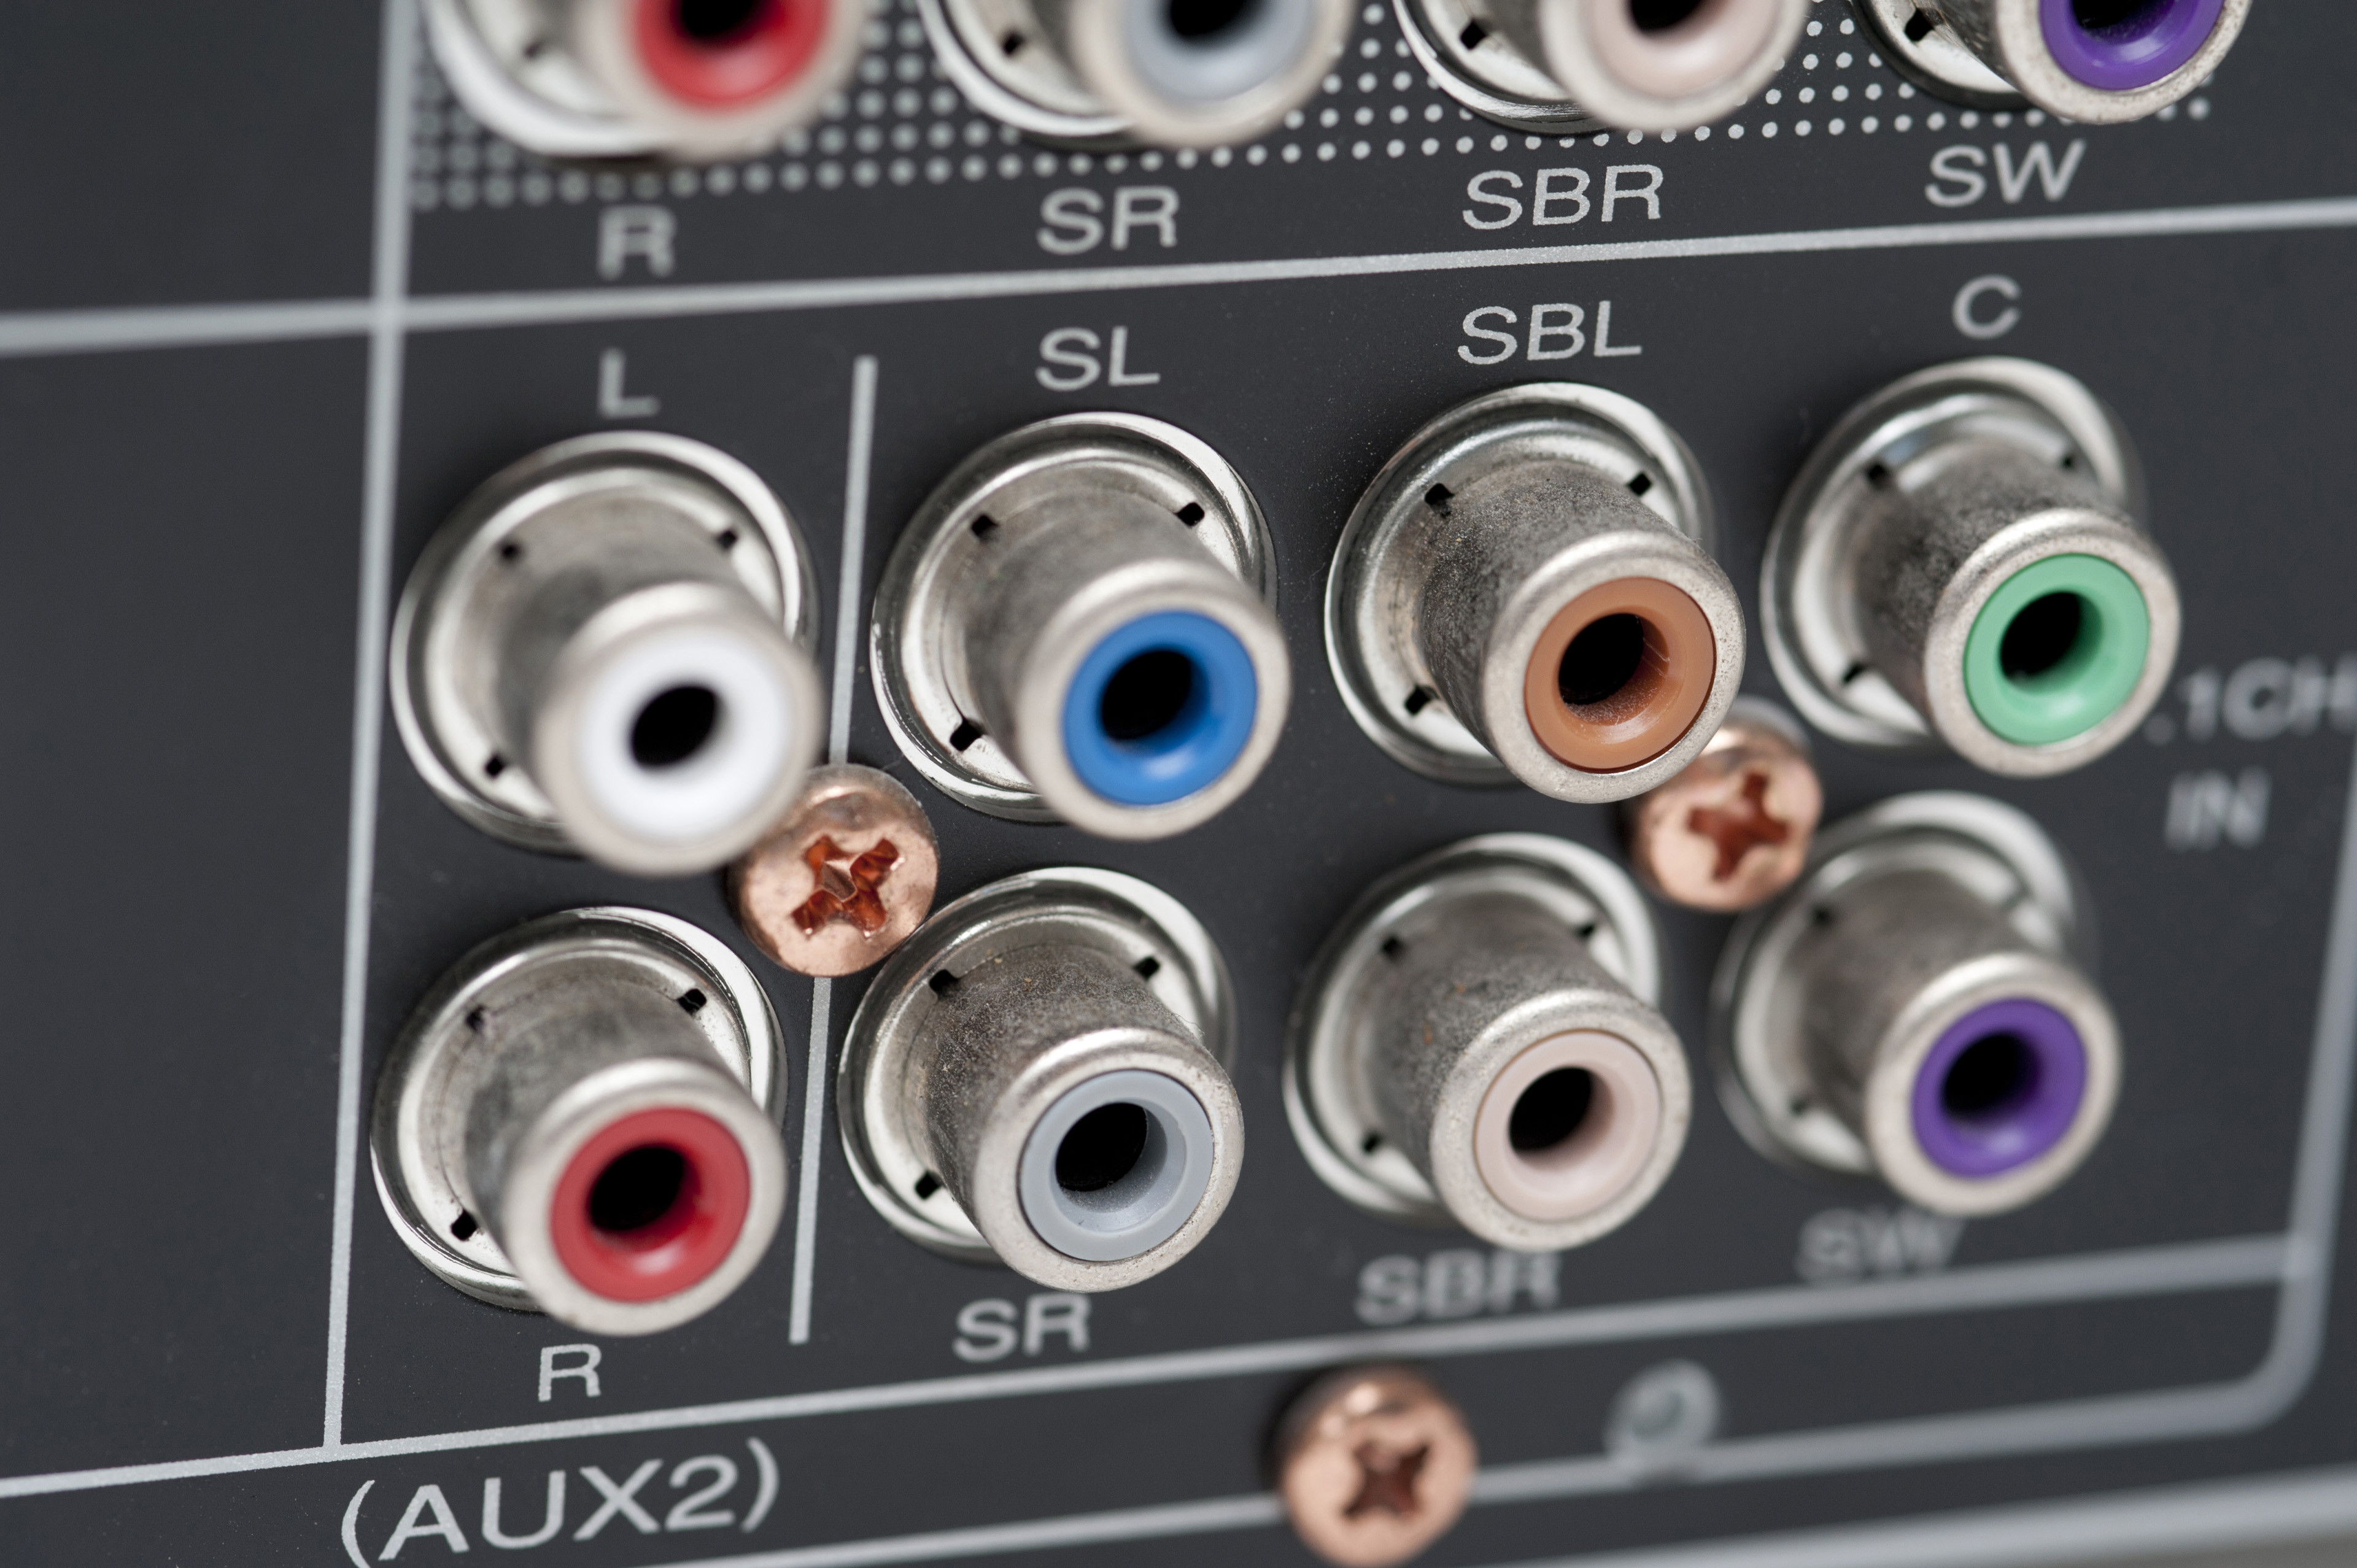 Phono audio connectors on the back of a Surround Sound Amplifier